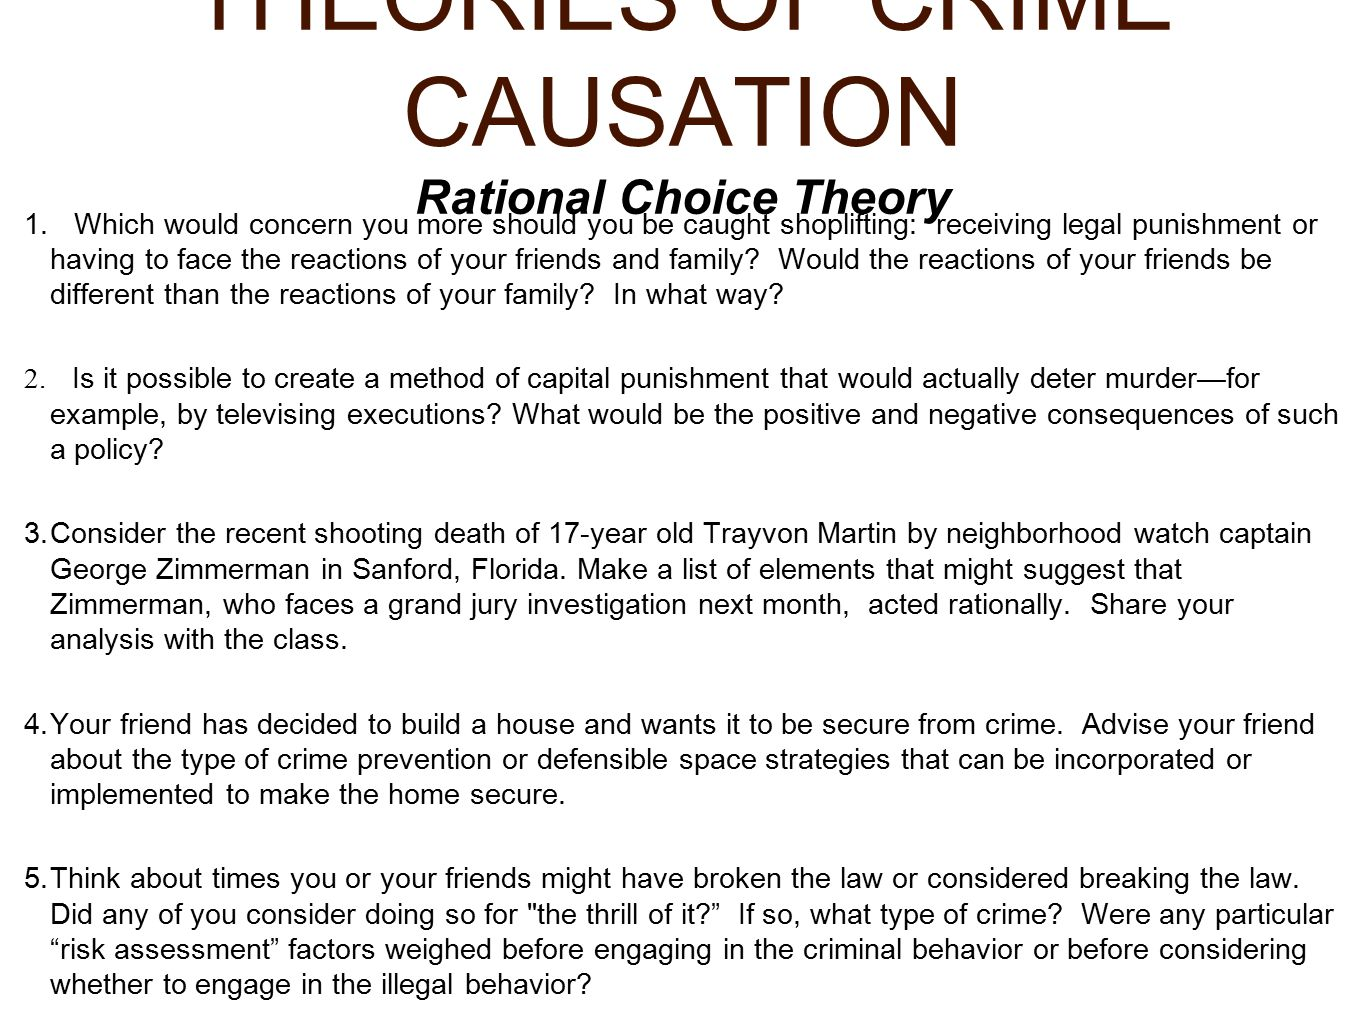 What are the Different Theories of Crime Causation?